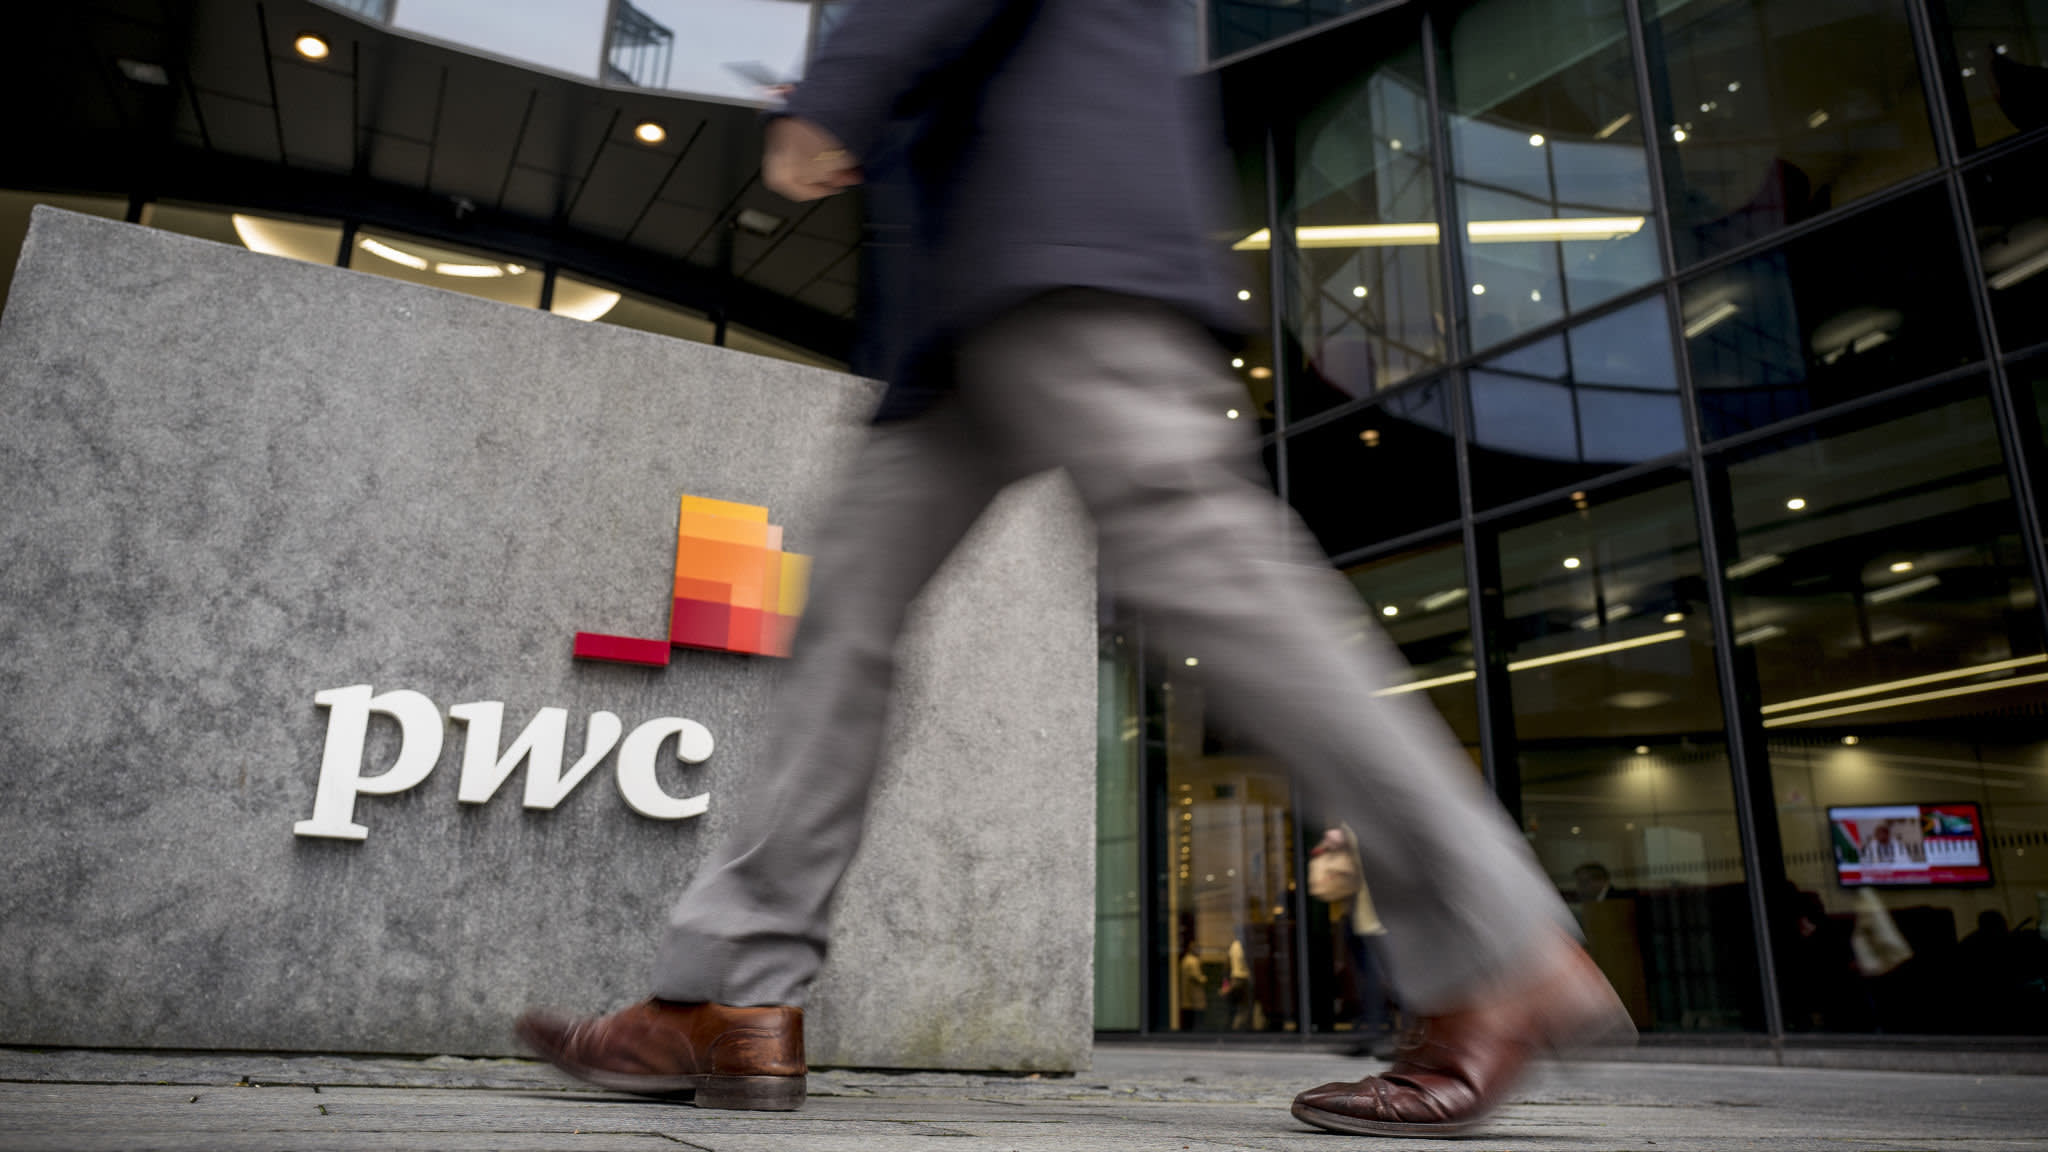 PwC chairman rejects calls to break up Big Four